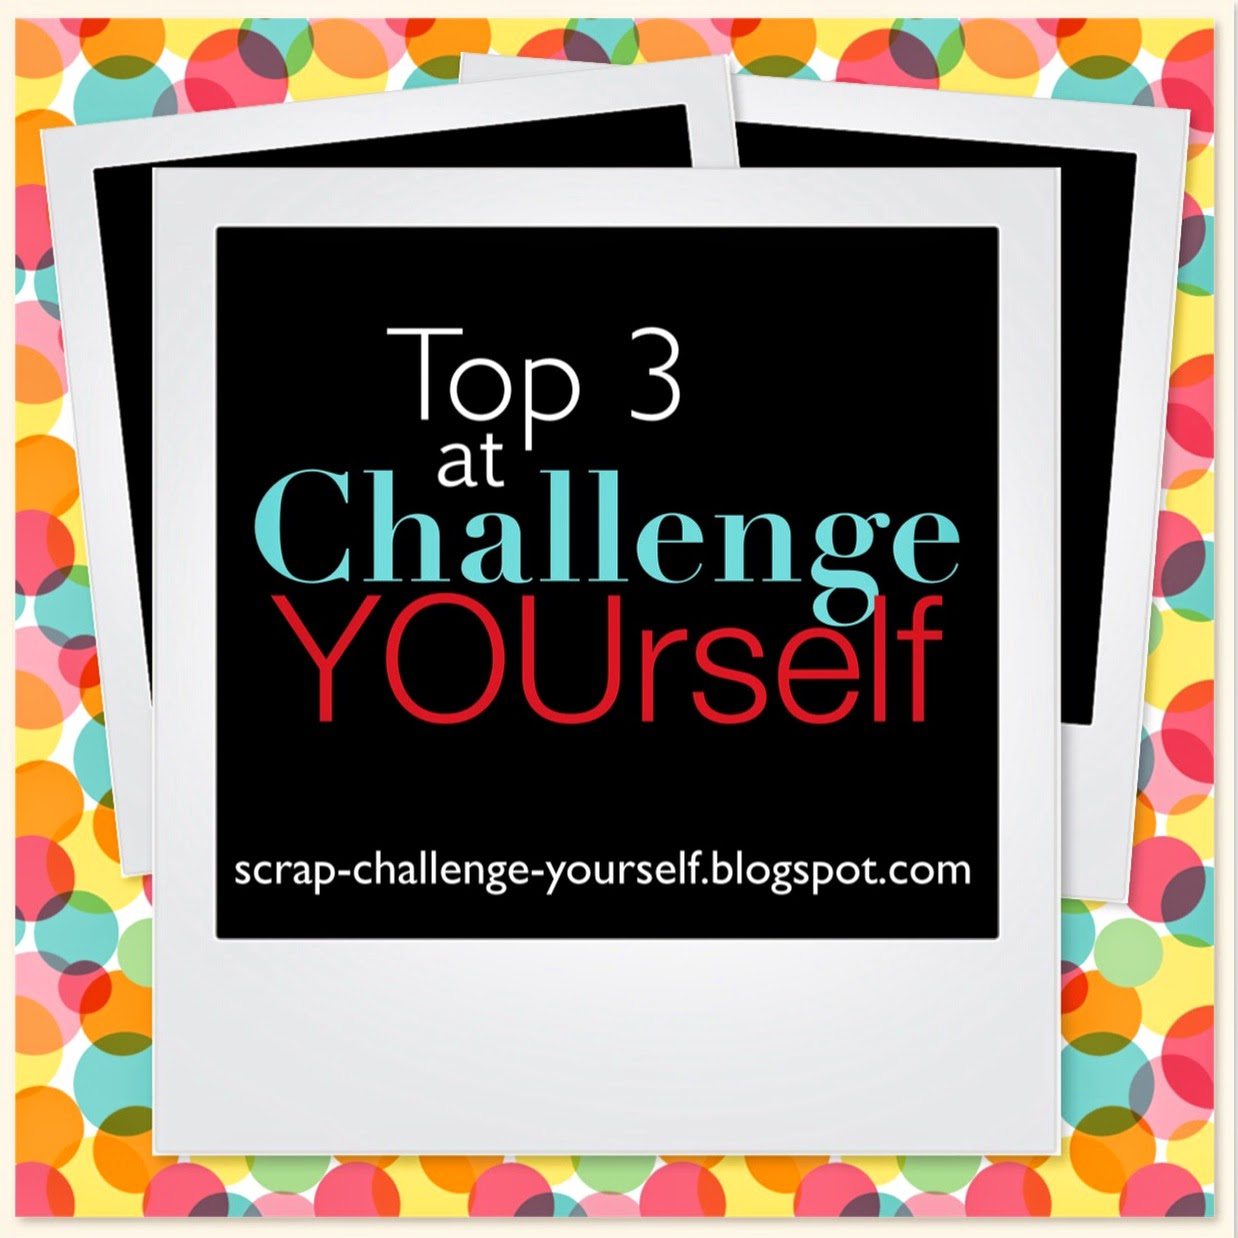 Top 3 at Challenge YOUrself!